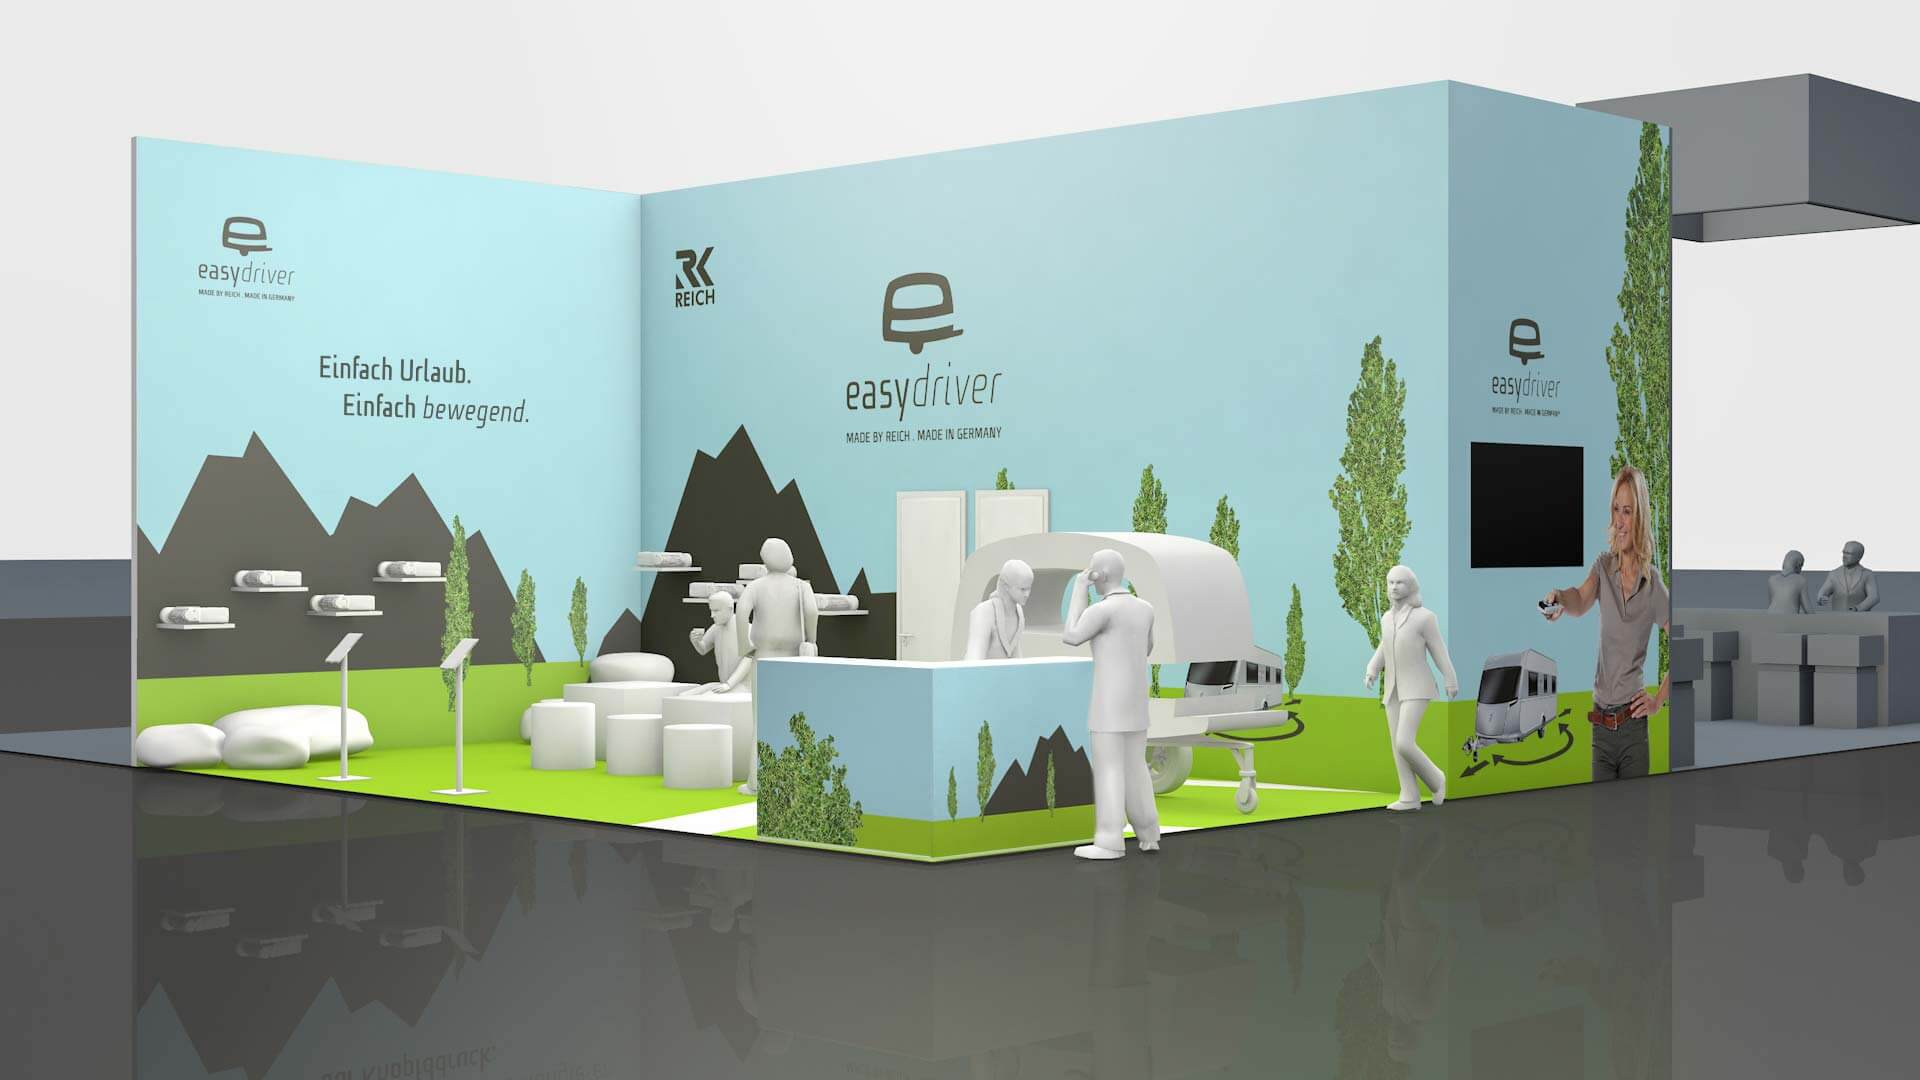 Referenz: REICH easydriver Messestand Rendering